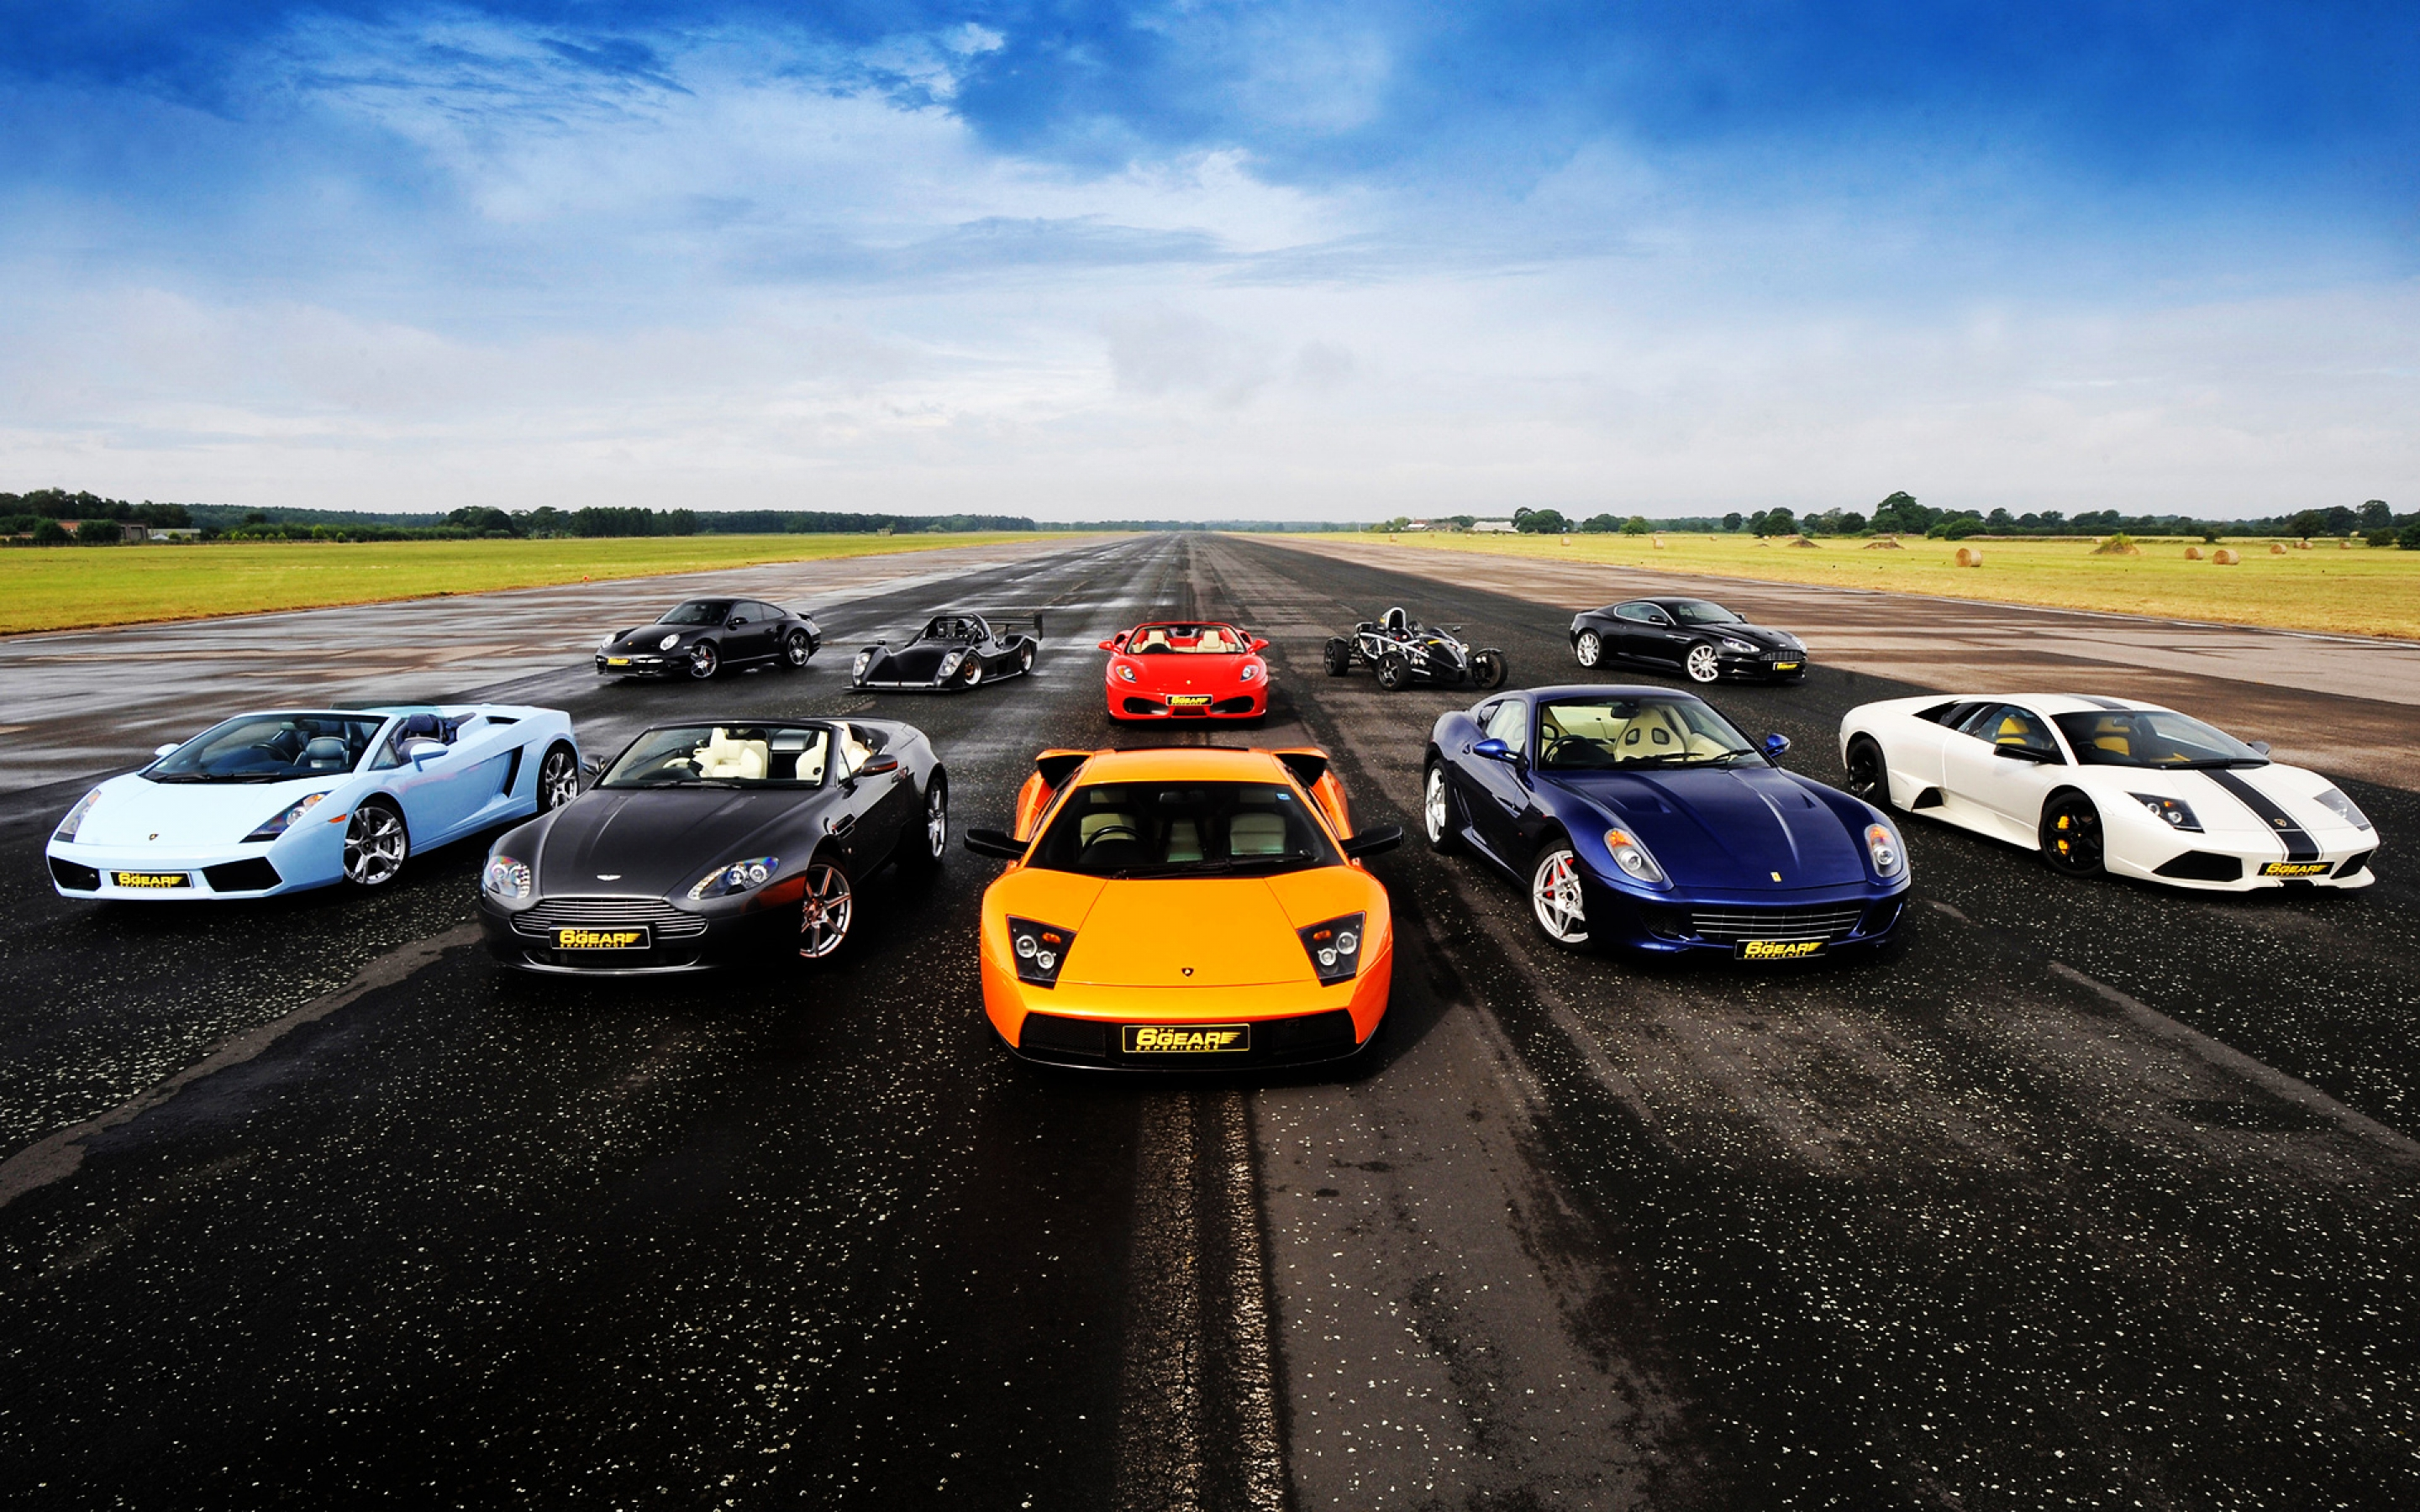 WallpapersWide.com | Supercars HD Desktop Wallpapers for ...